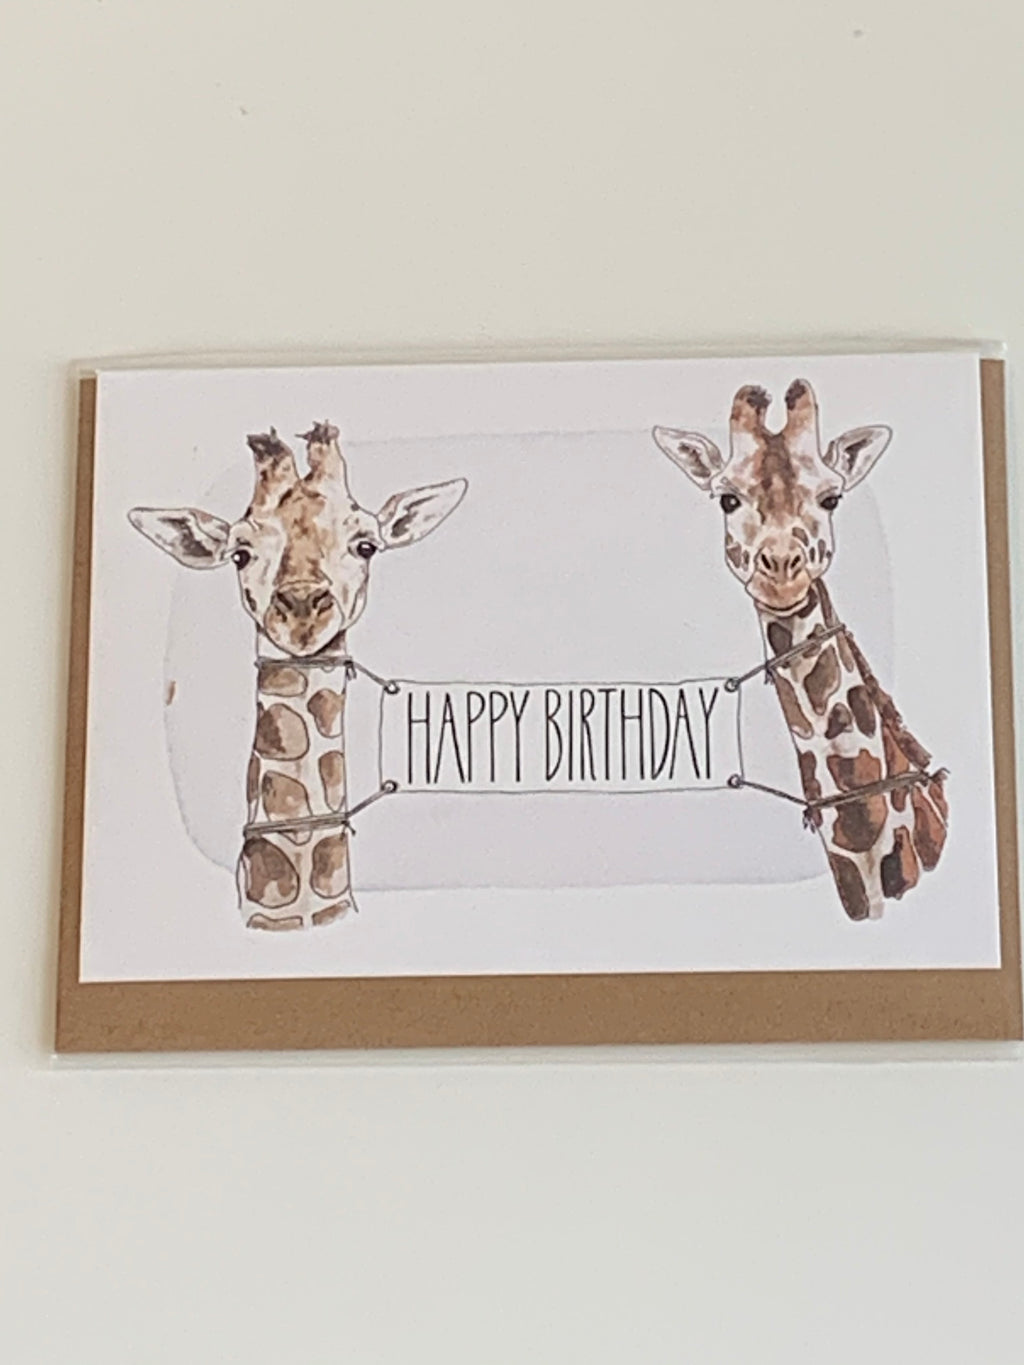 Birthday Giraffes Charity Greeting Card